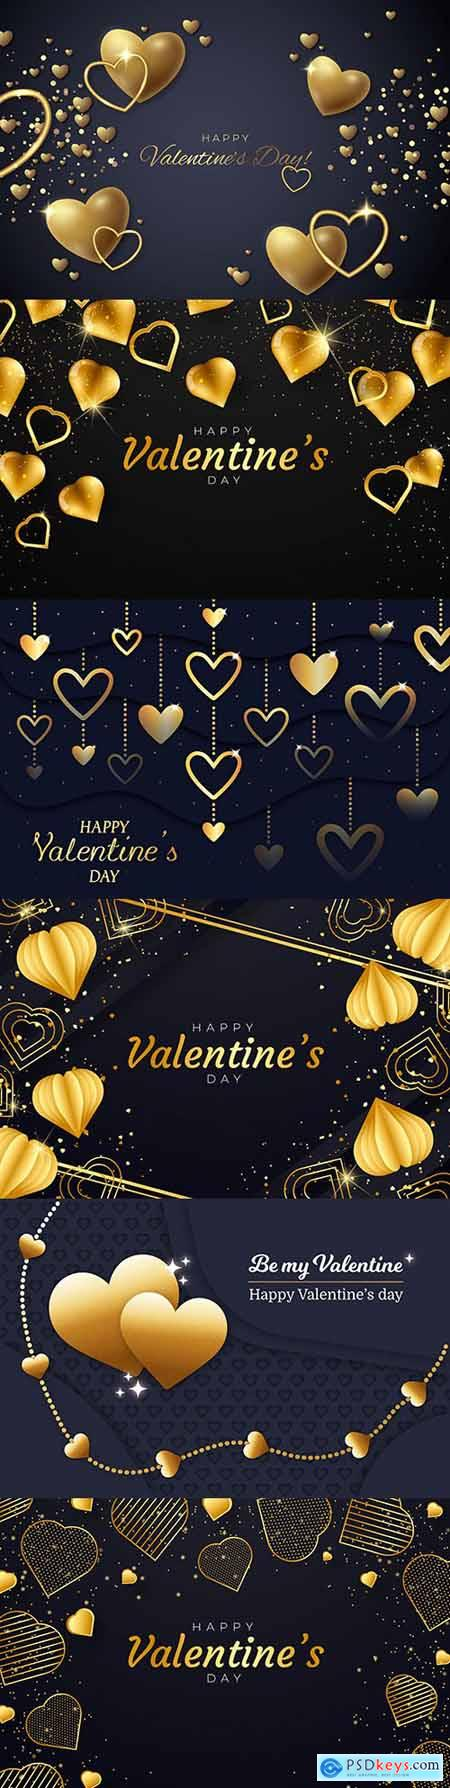 Valentines Day background with golden hearts and elements